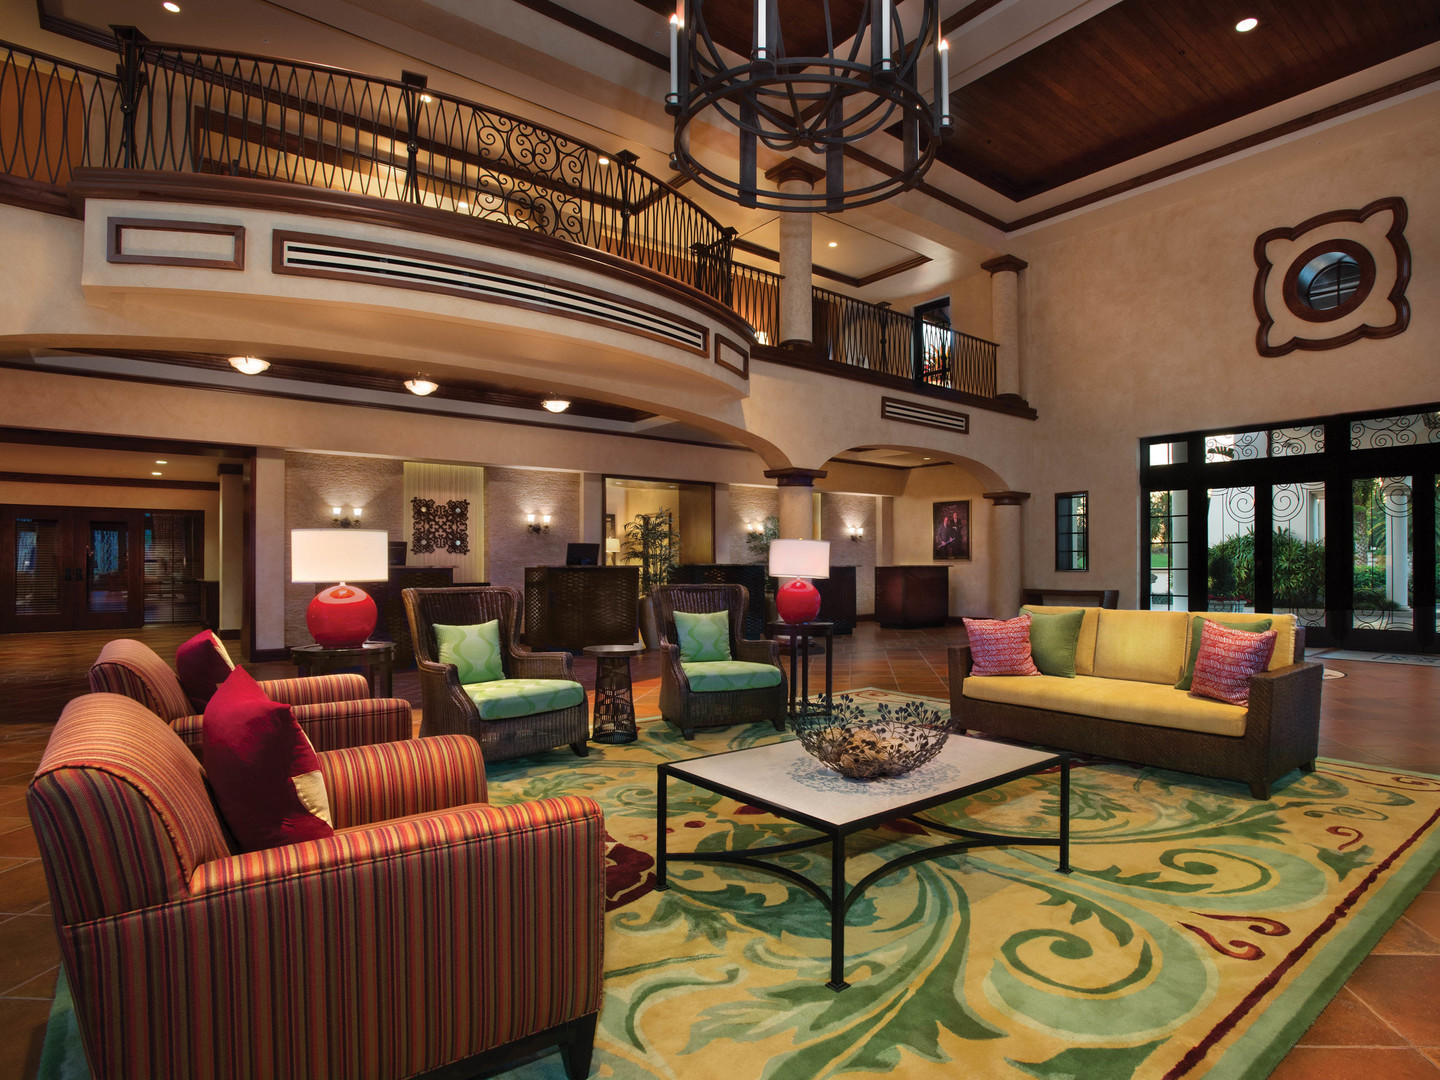 Marriott's Lakeshore Reserve Lobby. Marriott's Lakeshore Reserve is located in Orlando, Florida United States.